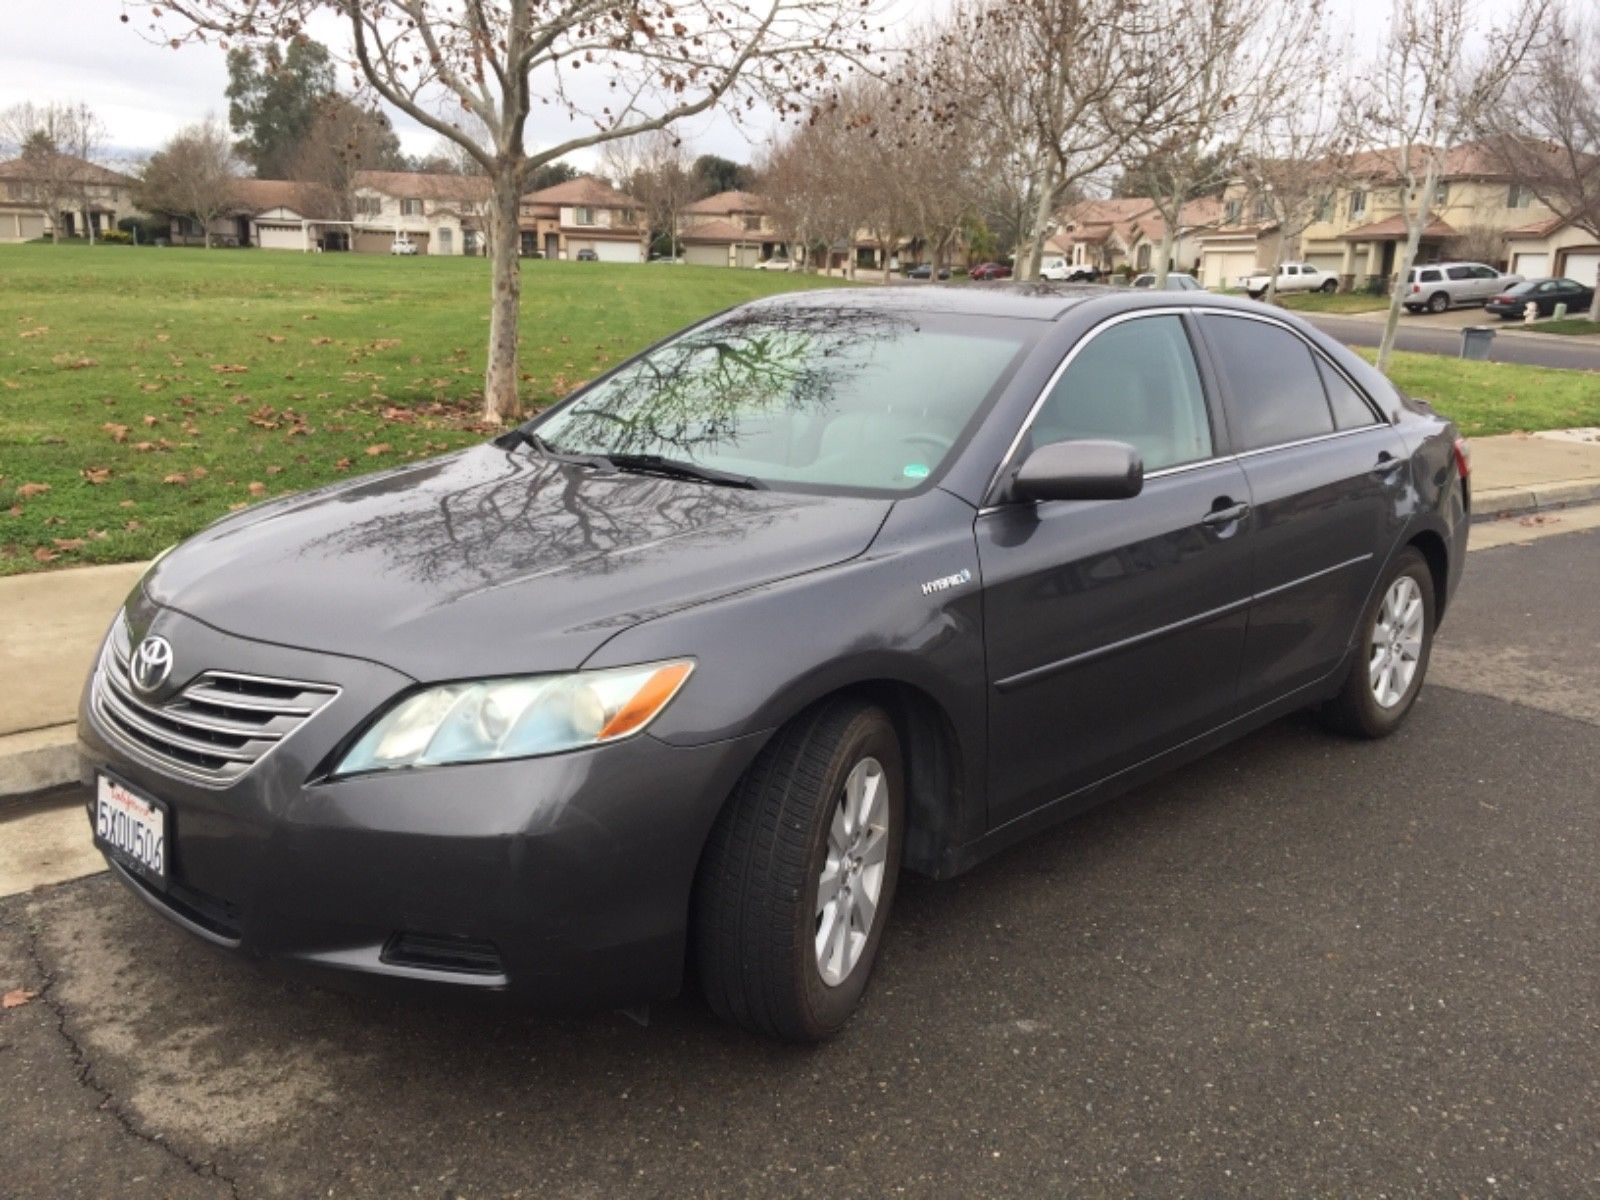 in se for blue ribbon metallic sale toyota car photo camry charcoal dark